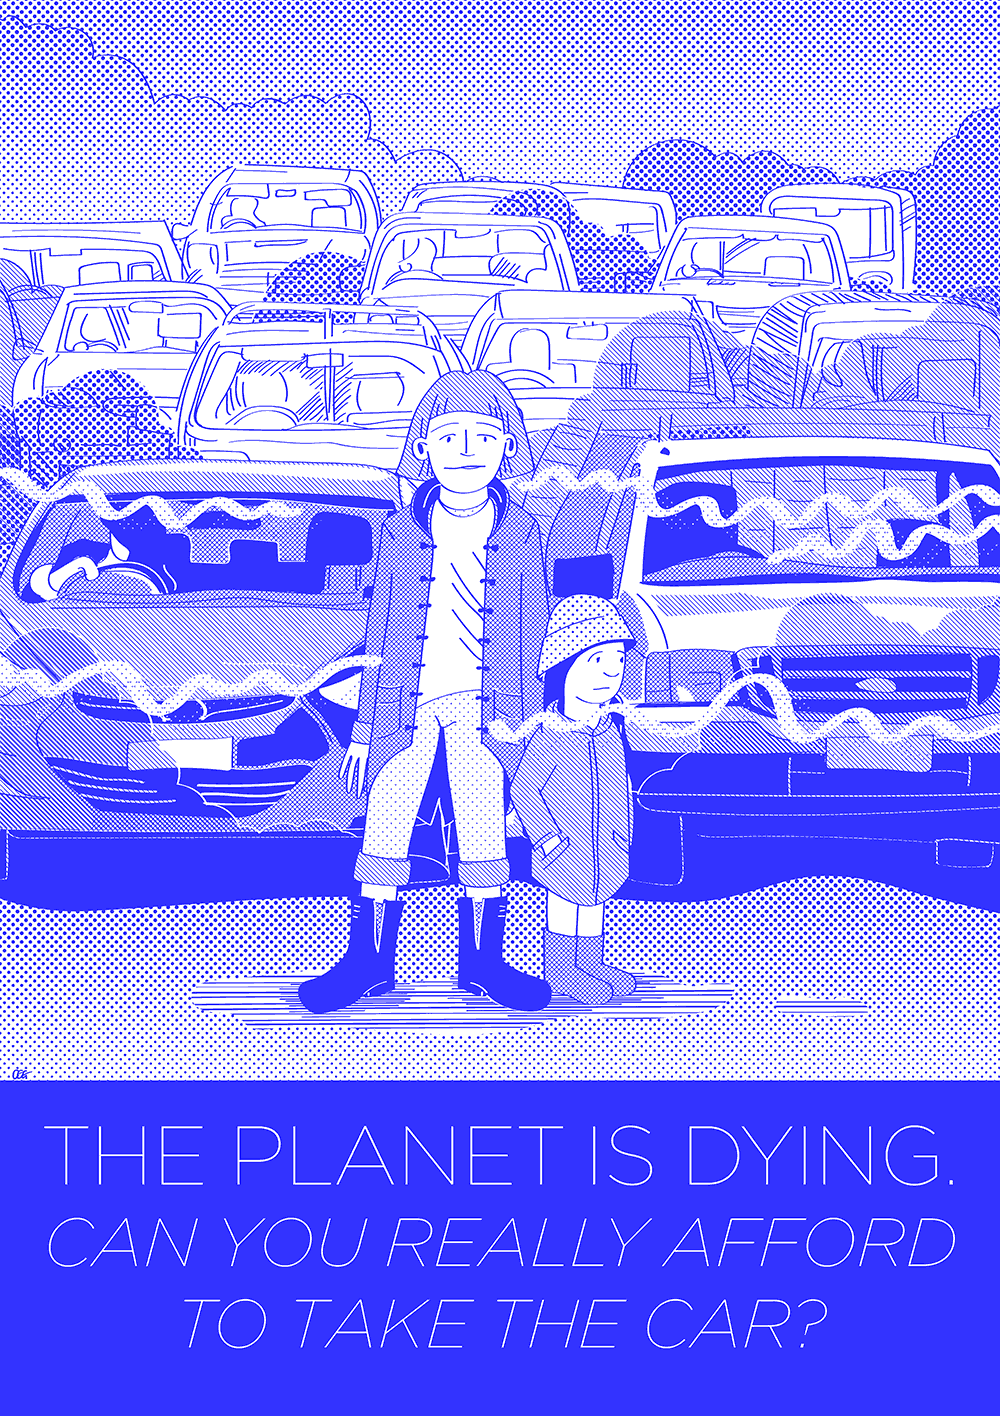 The planet is dying. Can you really afford to take the car?